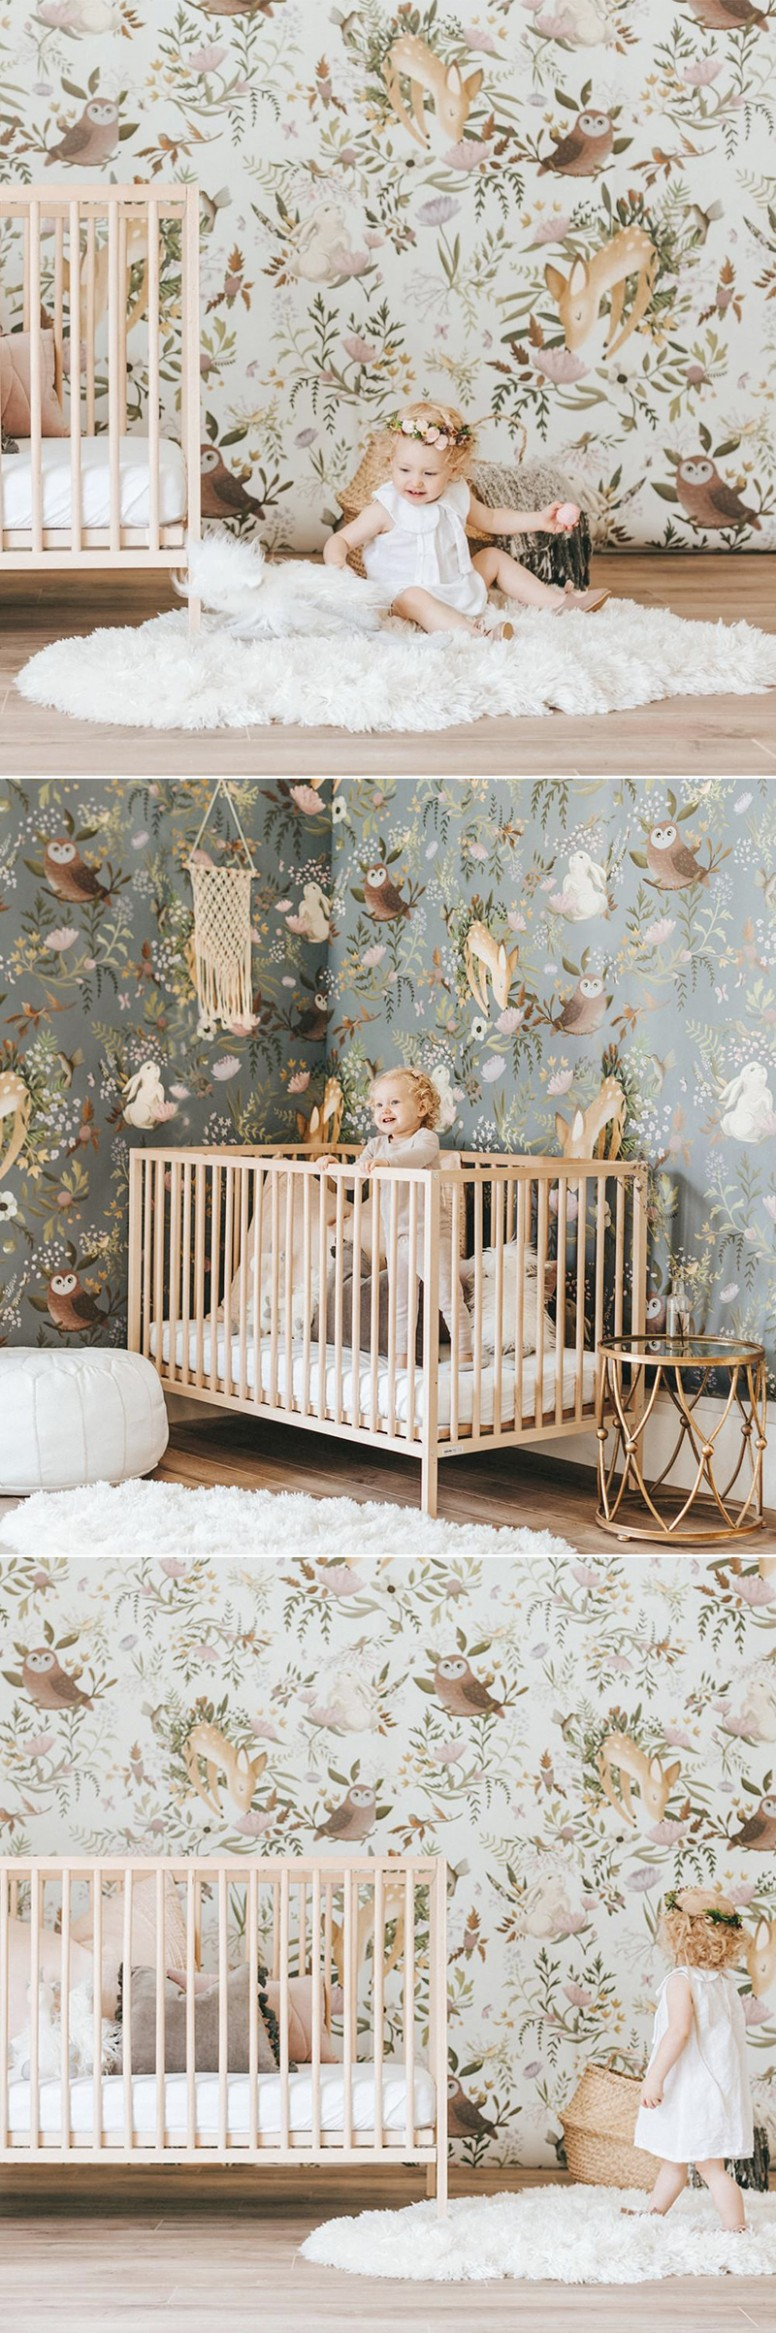 12 Modern Nursery Wallpaper Ideas That Create Stylish Baby Rooms  - Baby Room Wallpaper Ideas